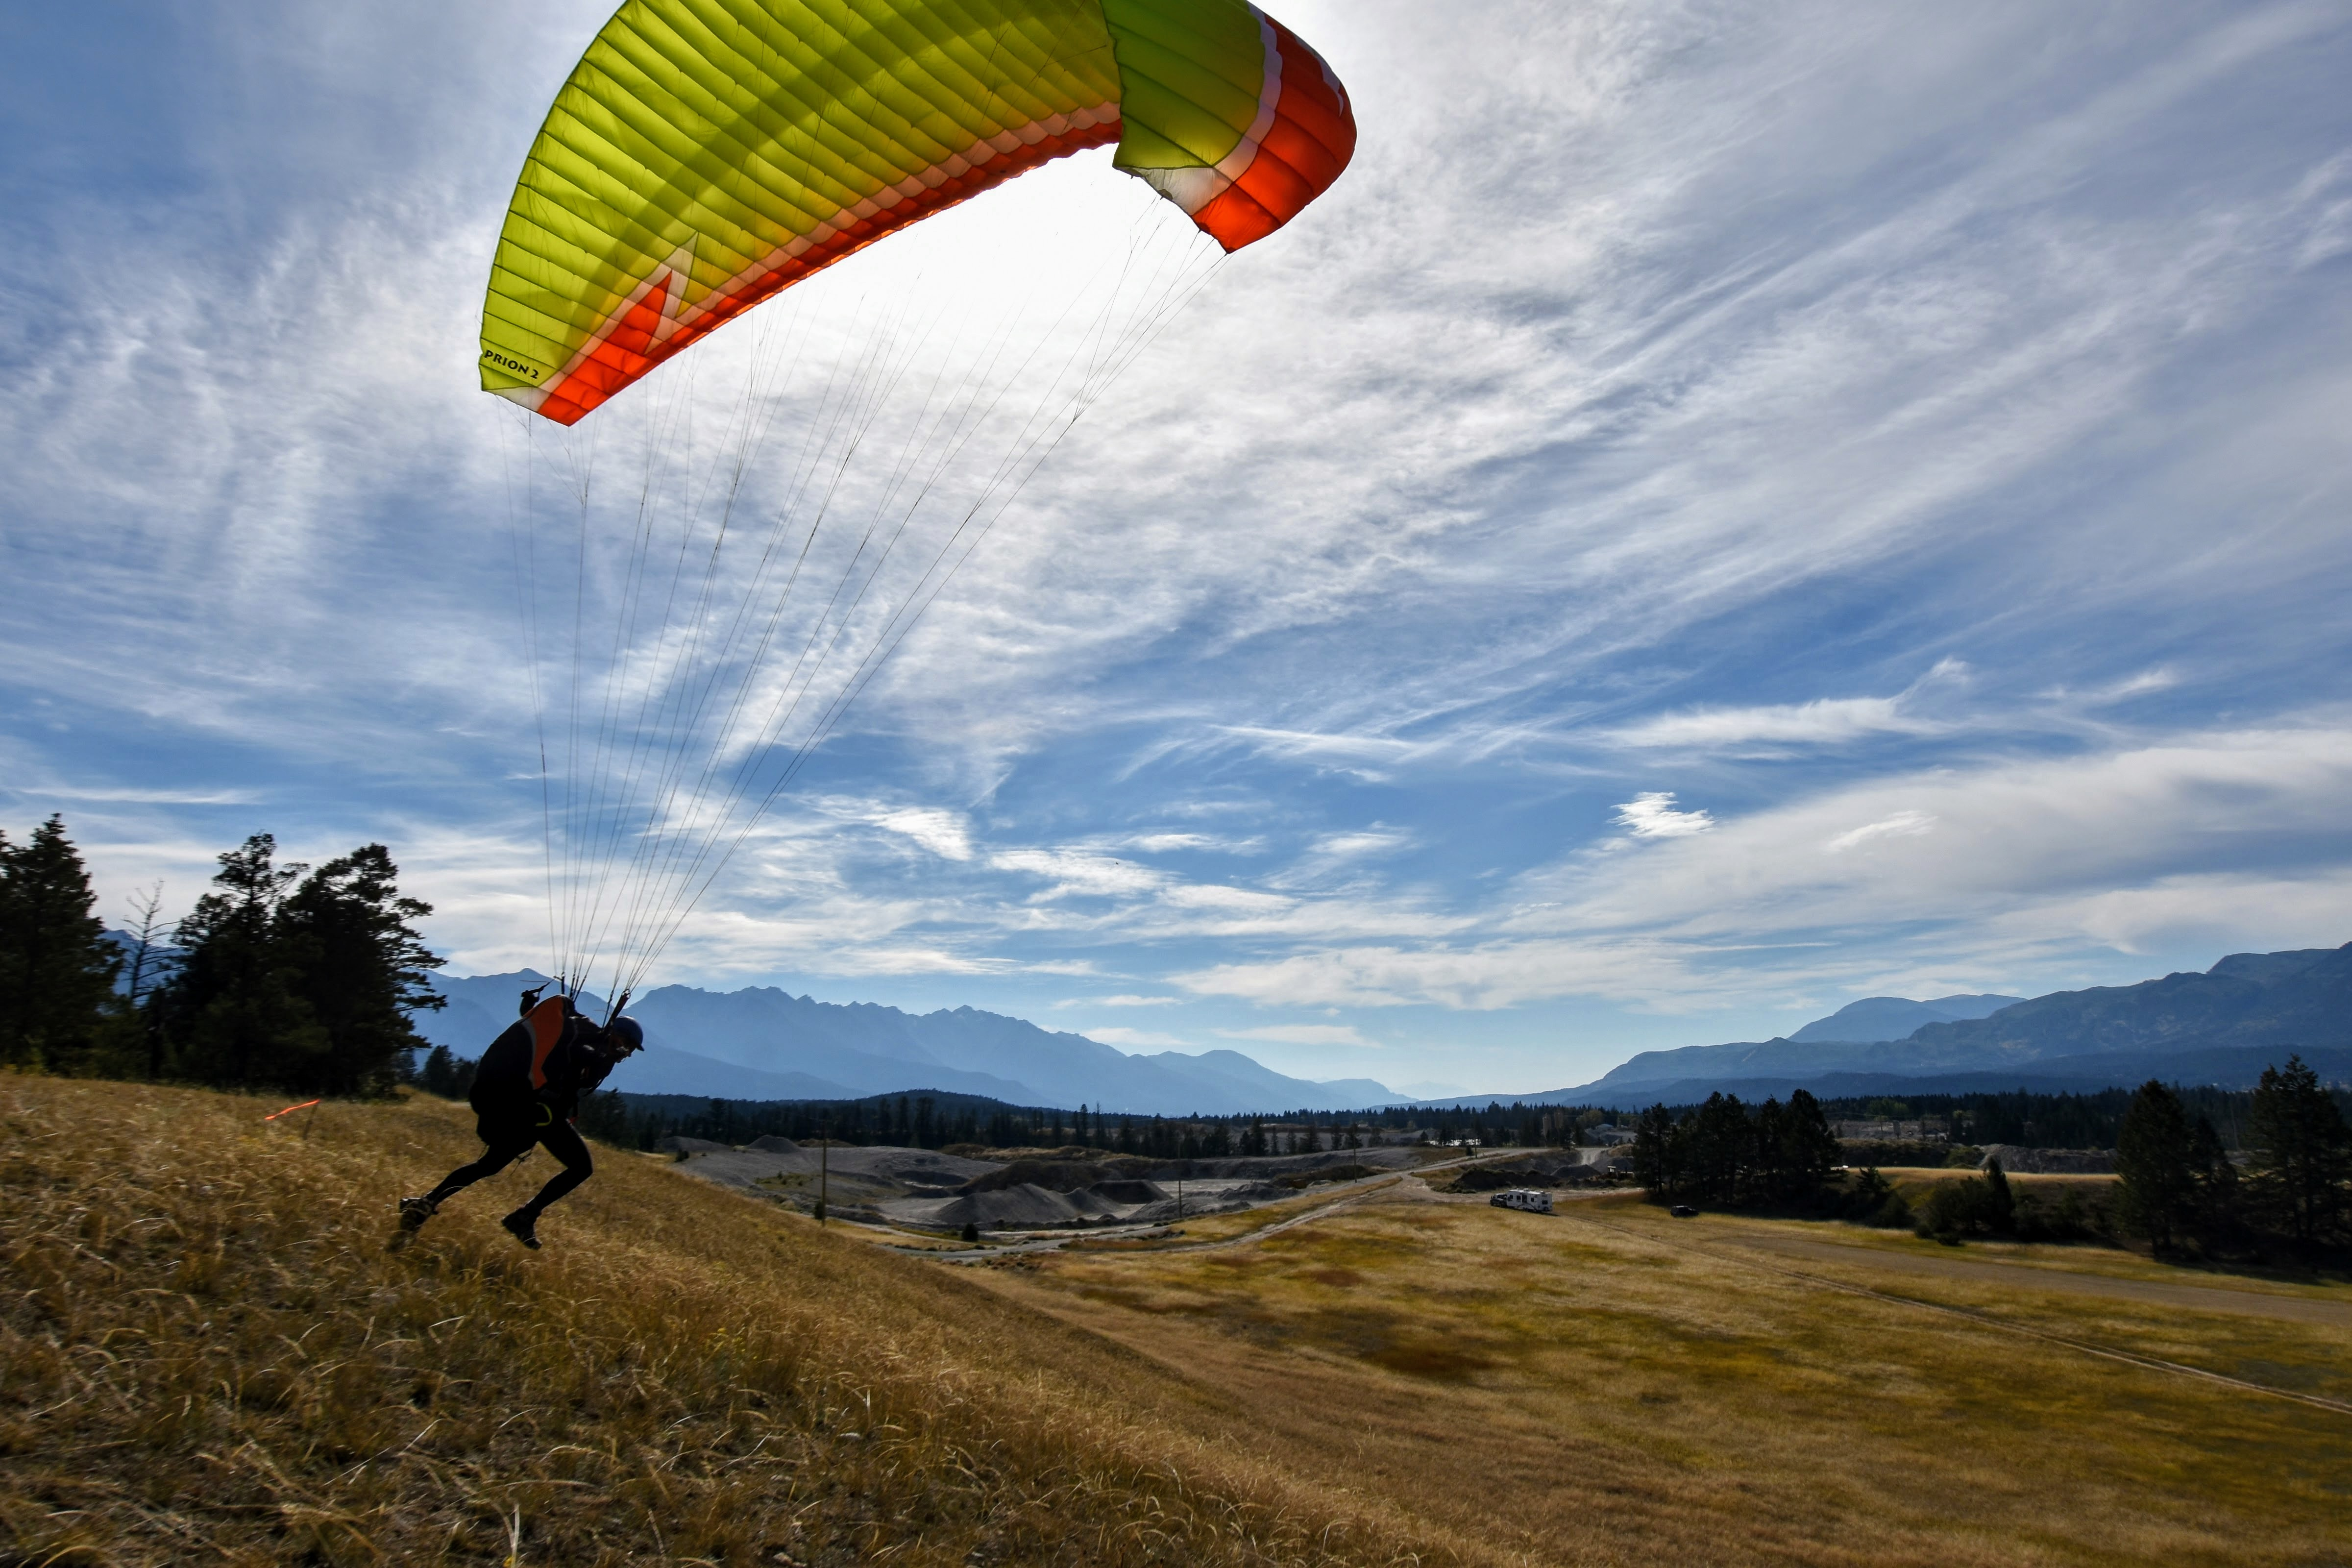 discuss who want to learn paragliding